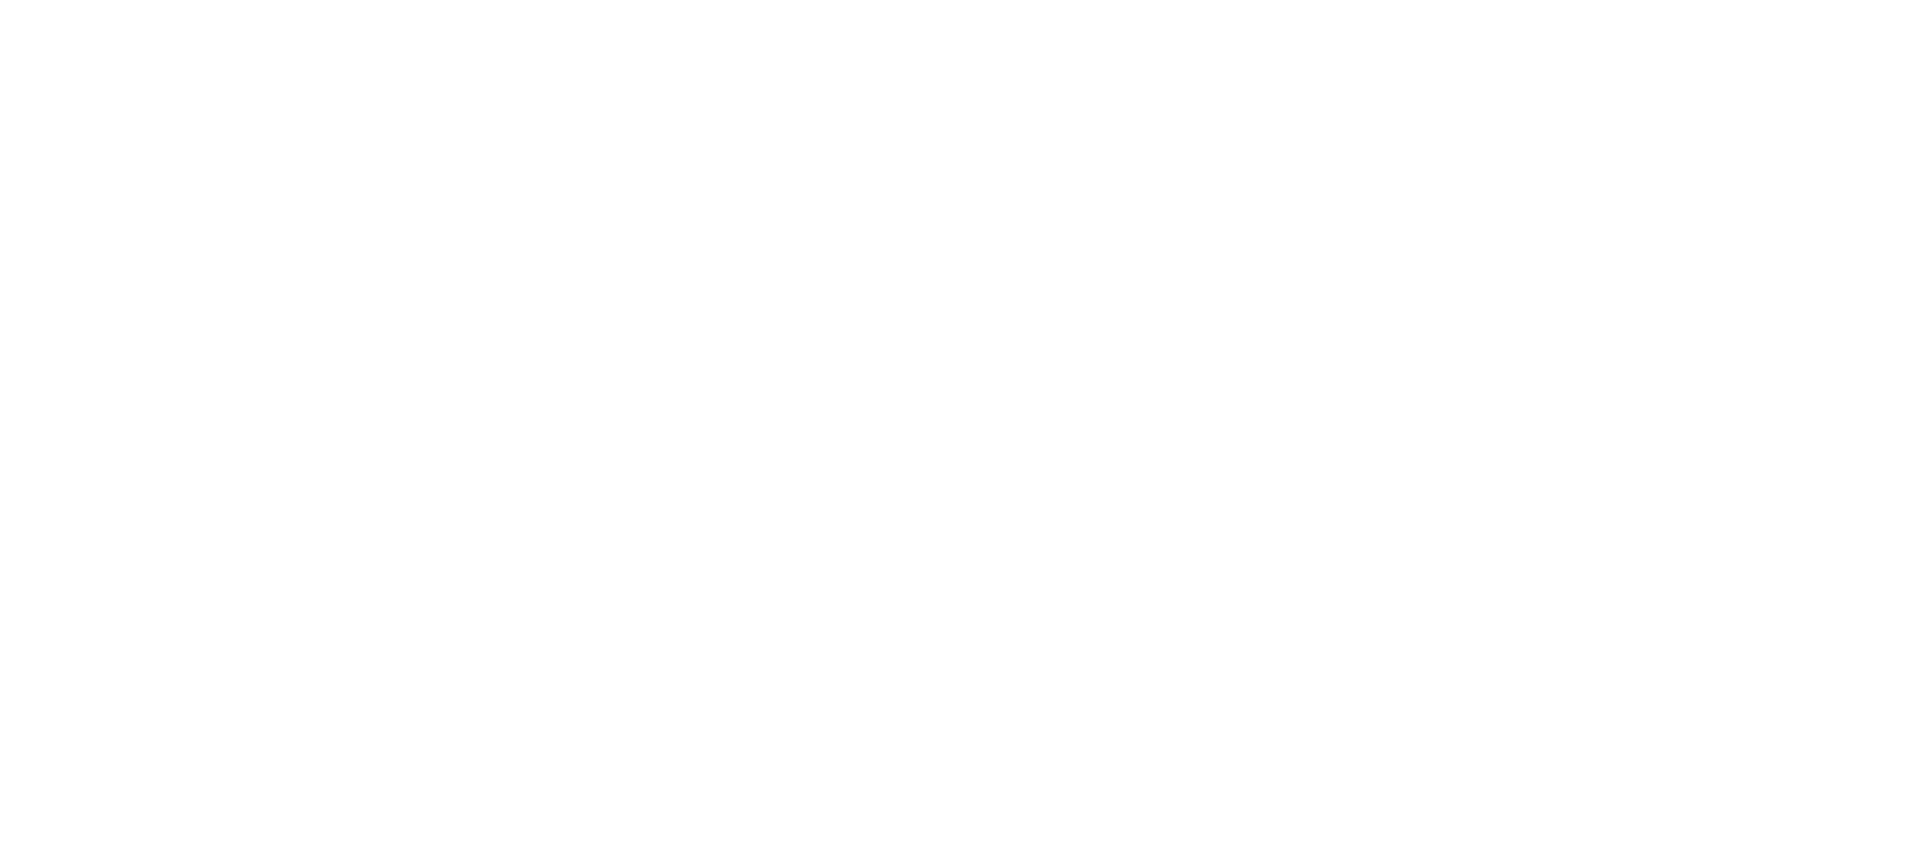 Learn Insight Platforms Logo - White